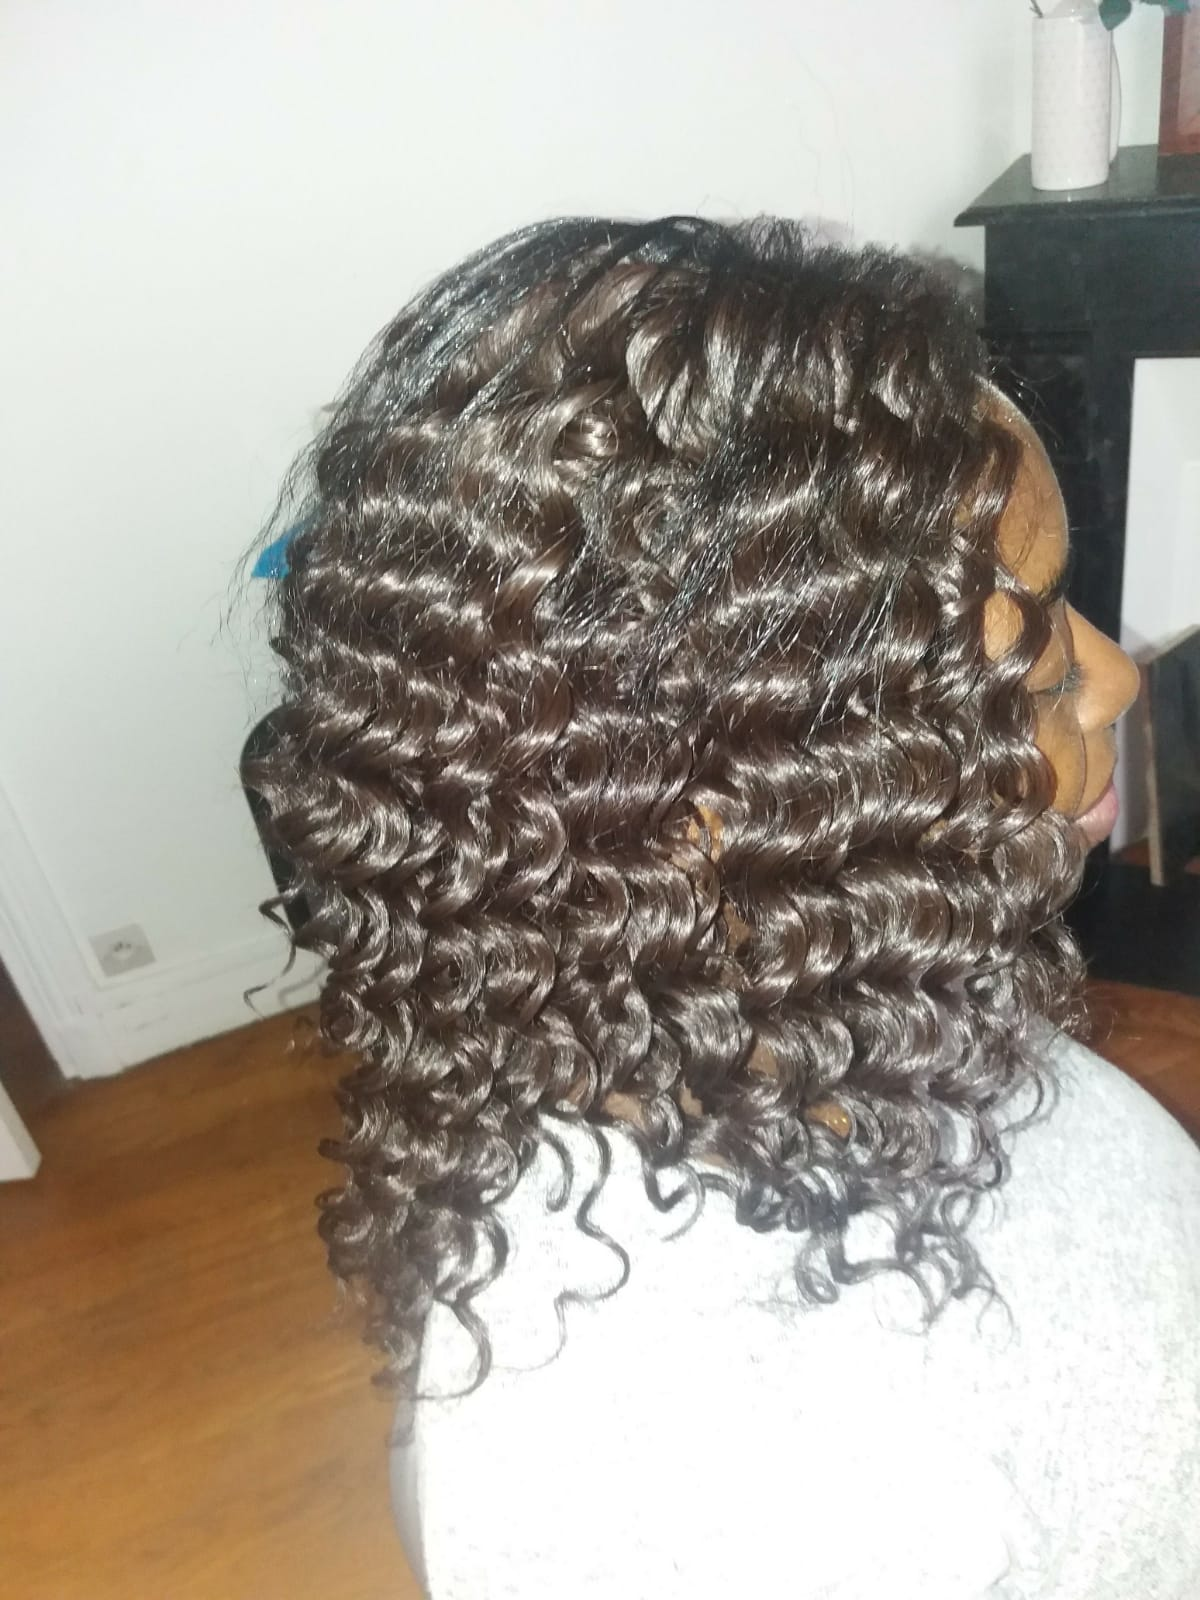 salon de coiffure afro tresse tresses box braids crochet braids vanilles tissages paris 75 77 78 91 92 93 94 95 JSYNMKMH